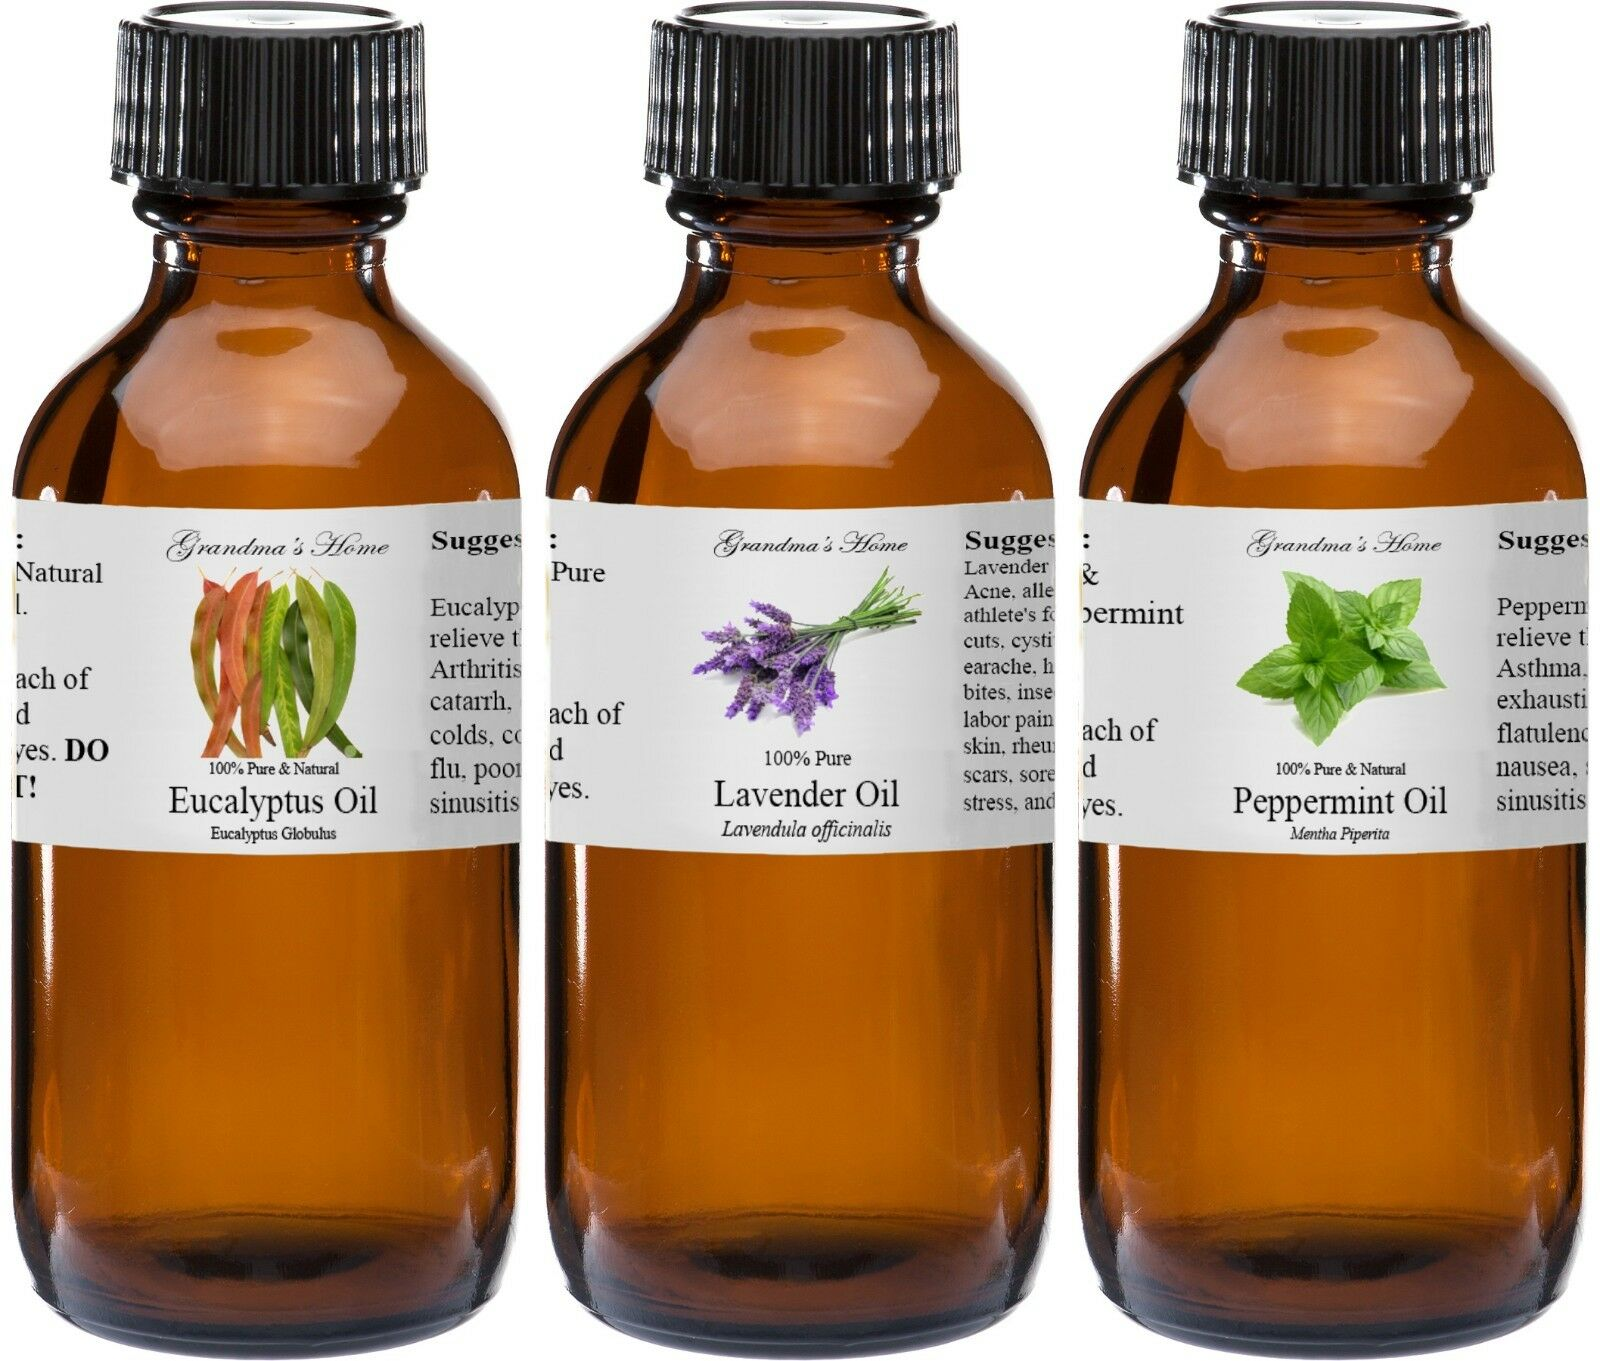 4 oz Essential Oils - 4 fl oz - 100% Pure and Natural - Therapeutic Grade Oil!